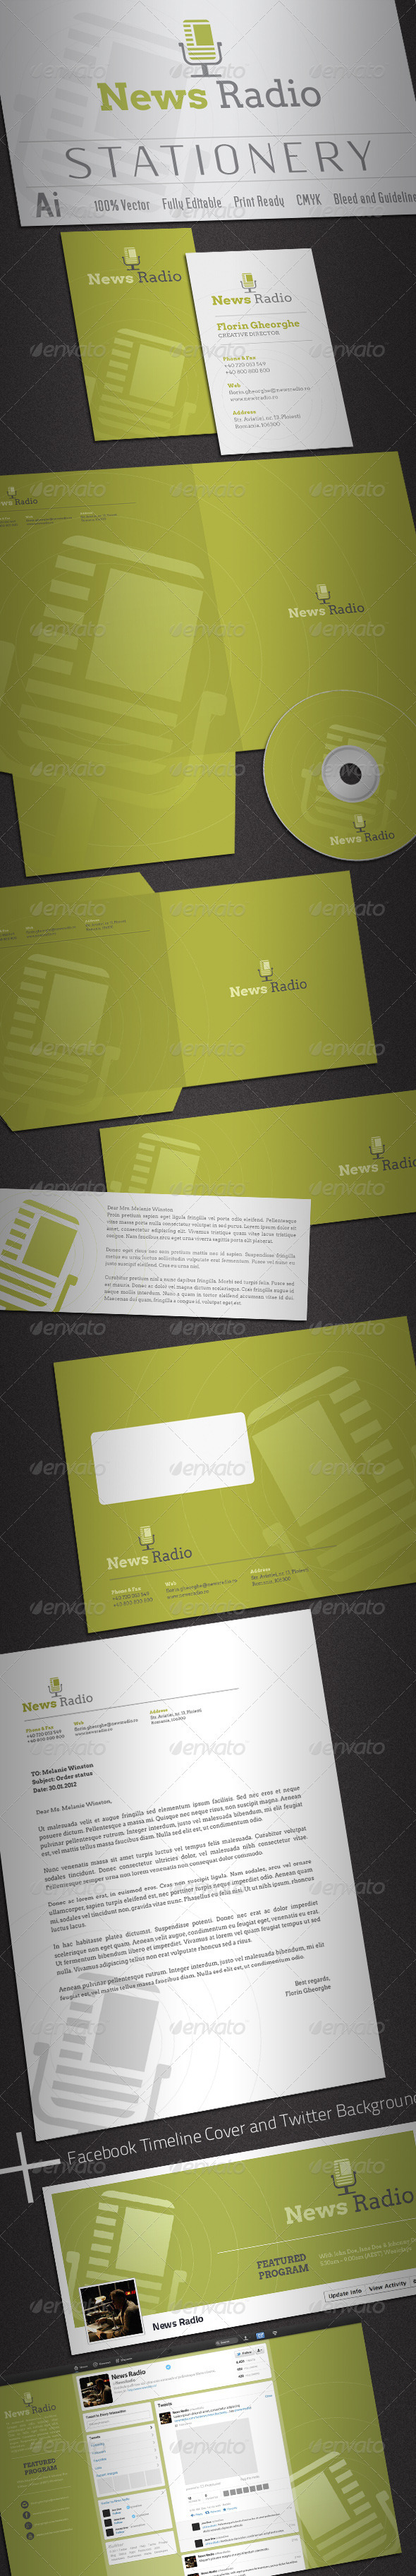 GraphicRiver News Radio Stationery 1980303